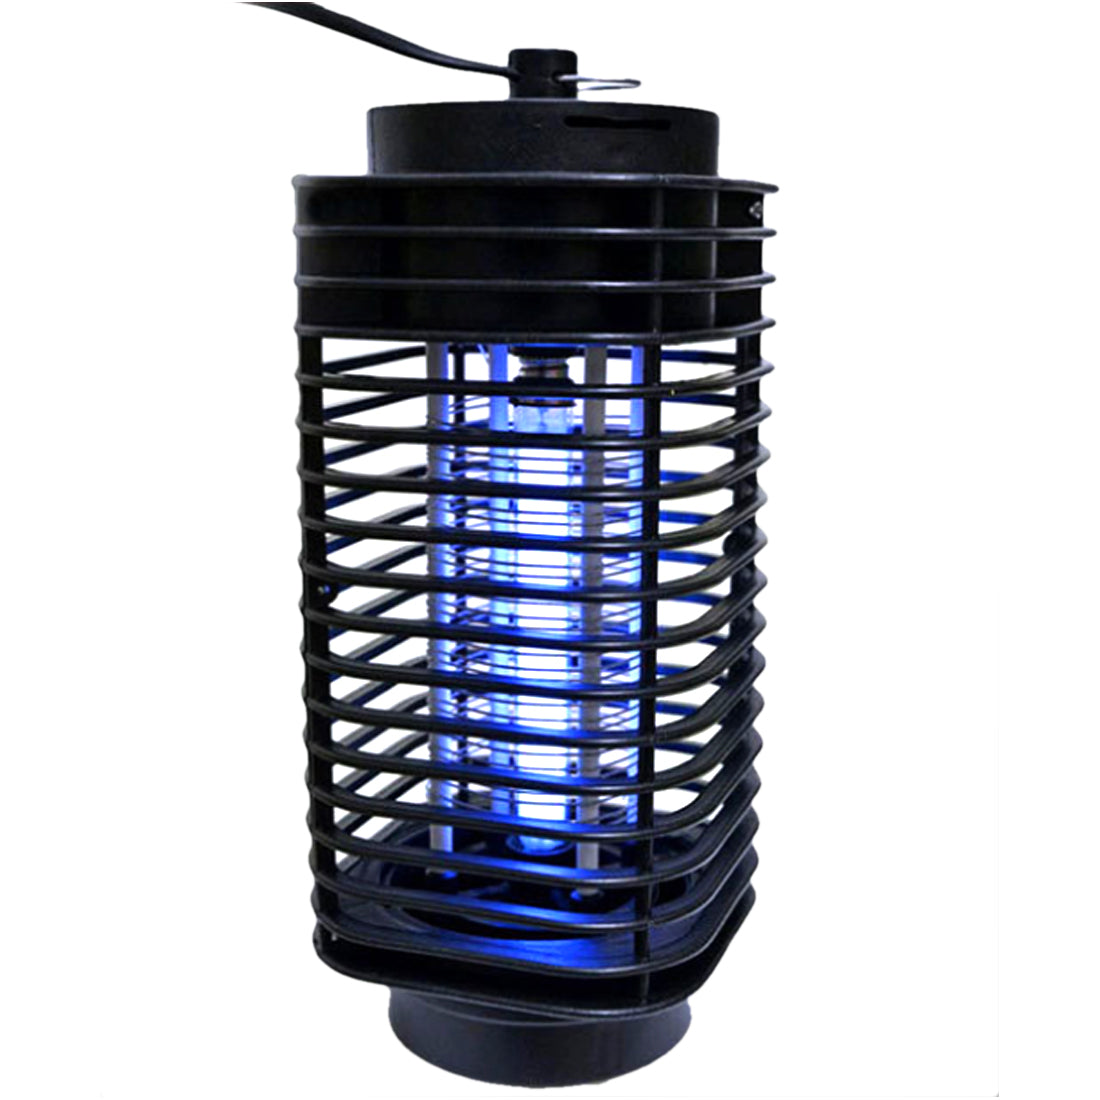 Costbuys  220V Household Electronic Mosquito Killer Lamp Anti Mosquito Muggen Killer Light Bug Zapper Trap Led Light Outdoor - 2